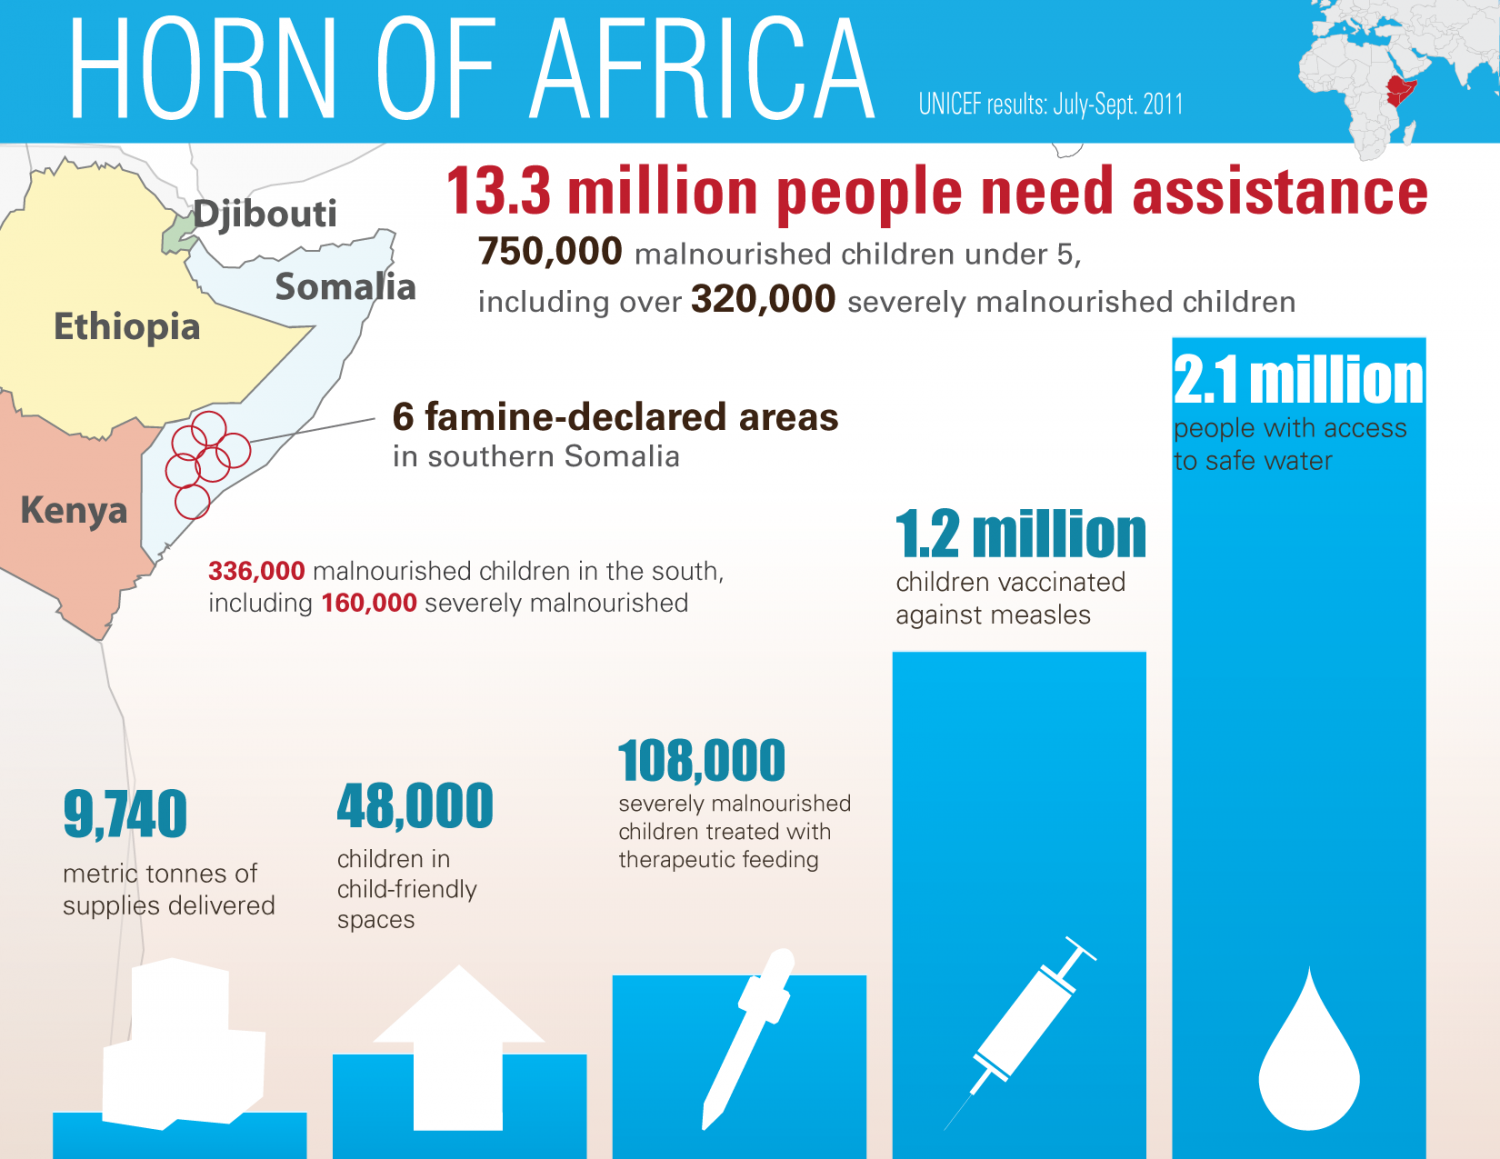 Horn of Africa - UNICEF results July-Sept 2011 Infographic